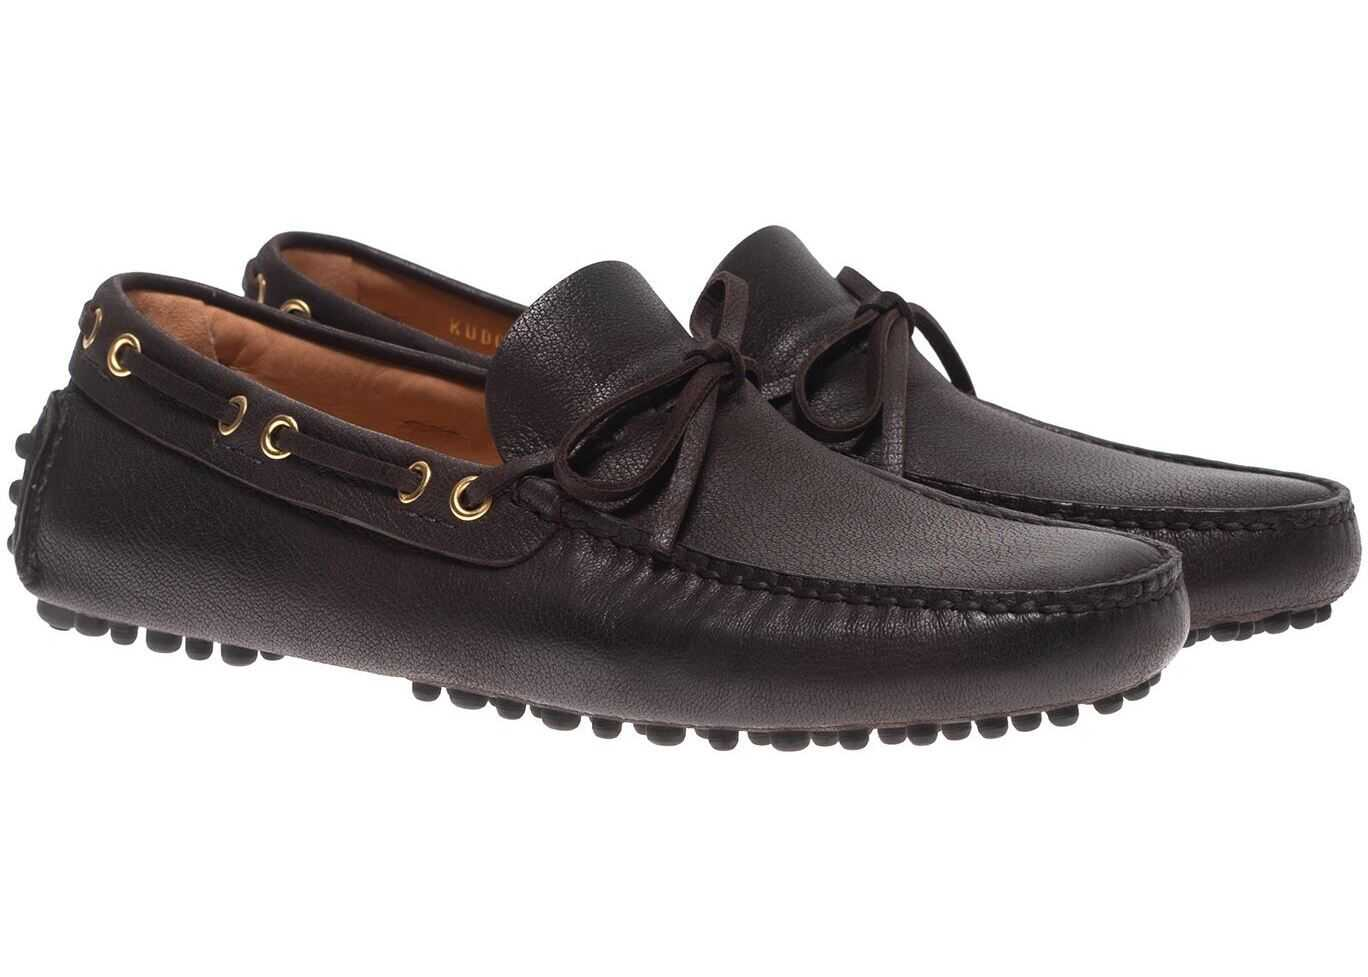 Car Shoe Driving Loafers In Ebony Color Leather KUD006 3AI0 F0192 Brown imagine b-mall.ro